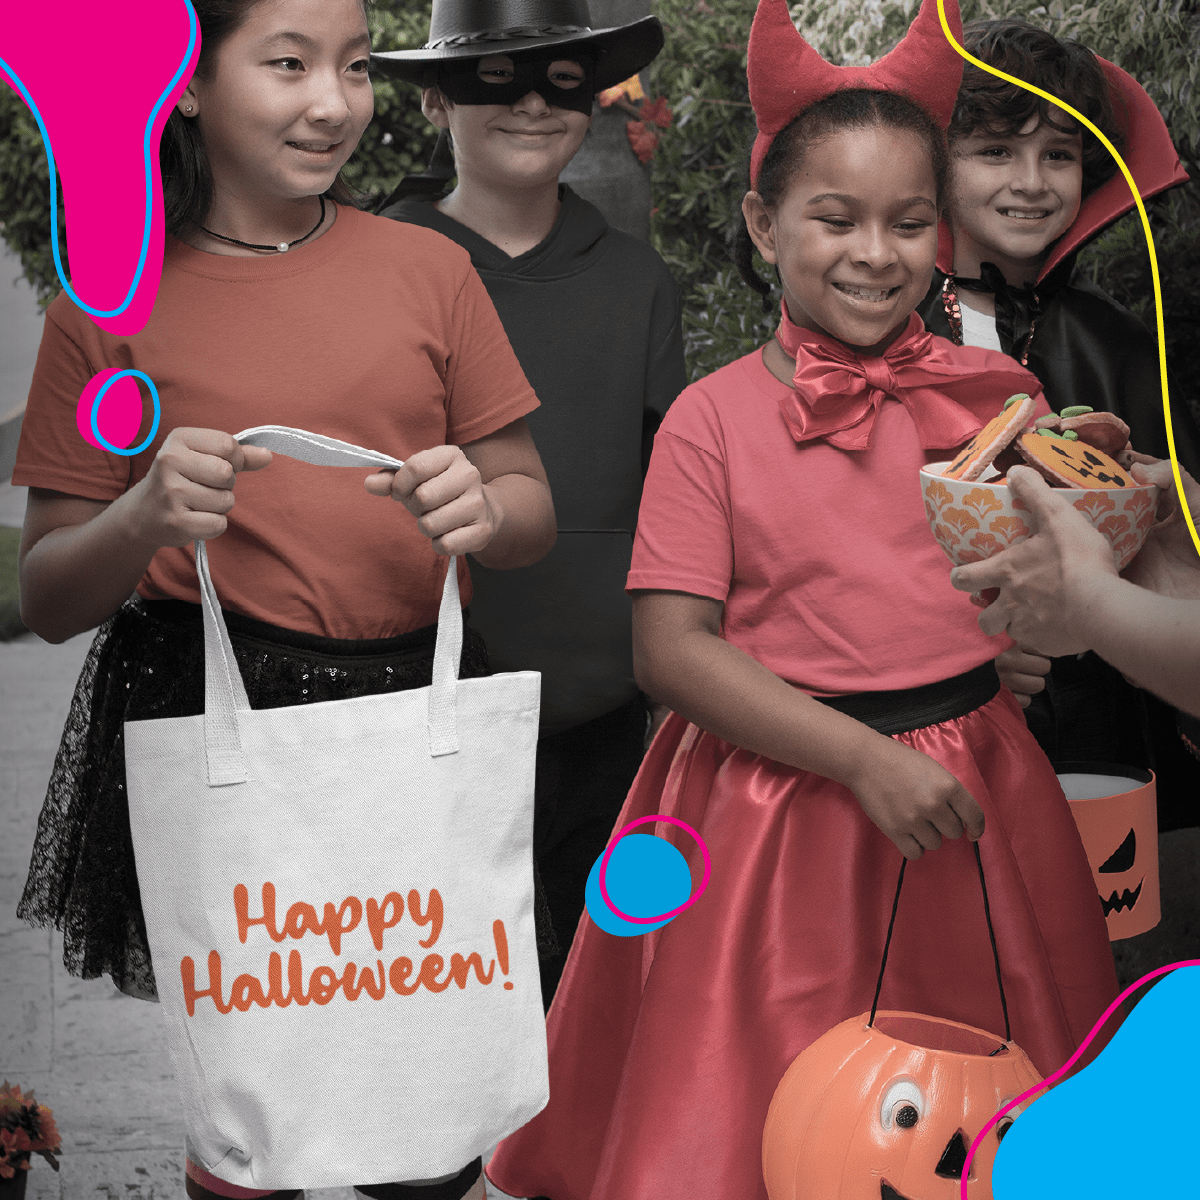 Children asking for candies with a tote bag, a Halloween trending product